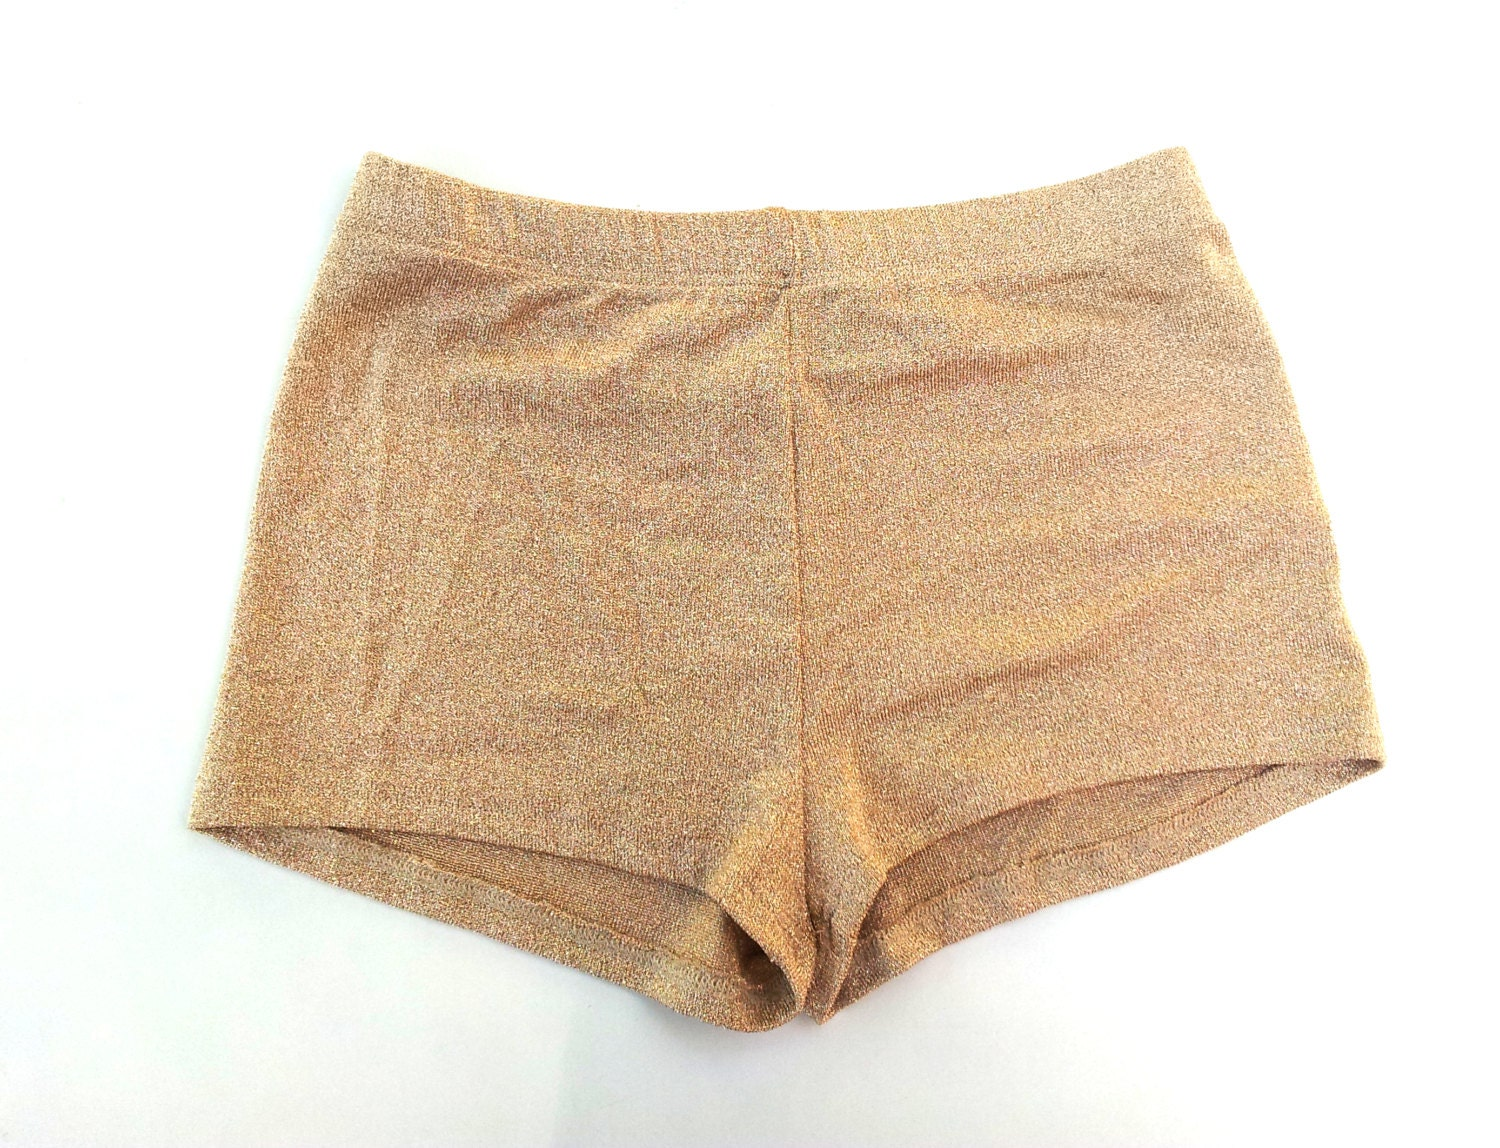 Vintage Hot Pants 90s, GOTTEX, Shorts in Gold, Booty Shorts. Womens Small -  Medium - Buyairsupply